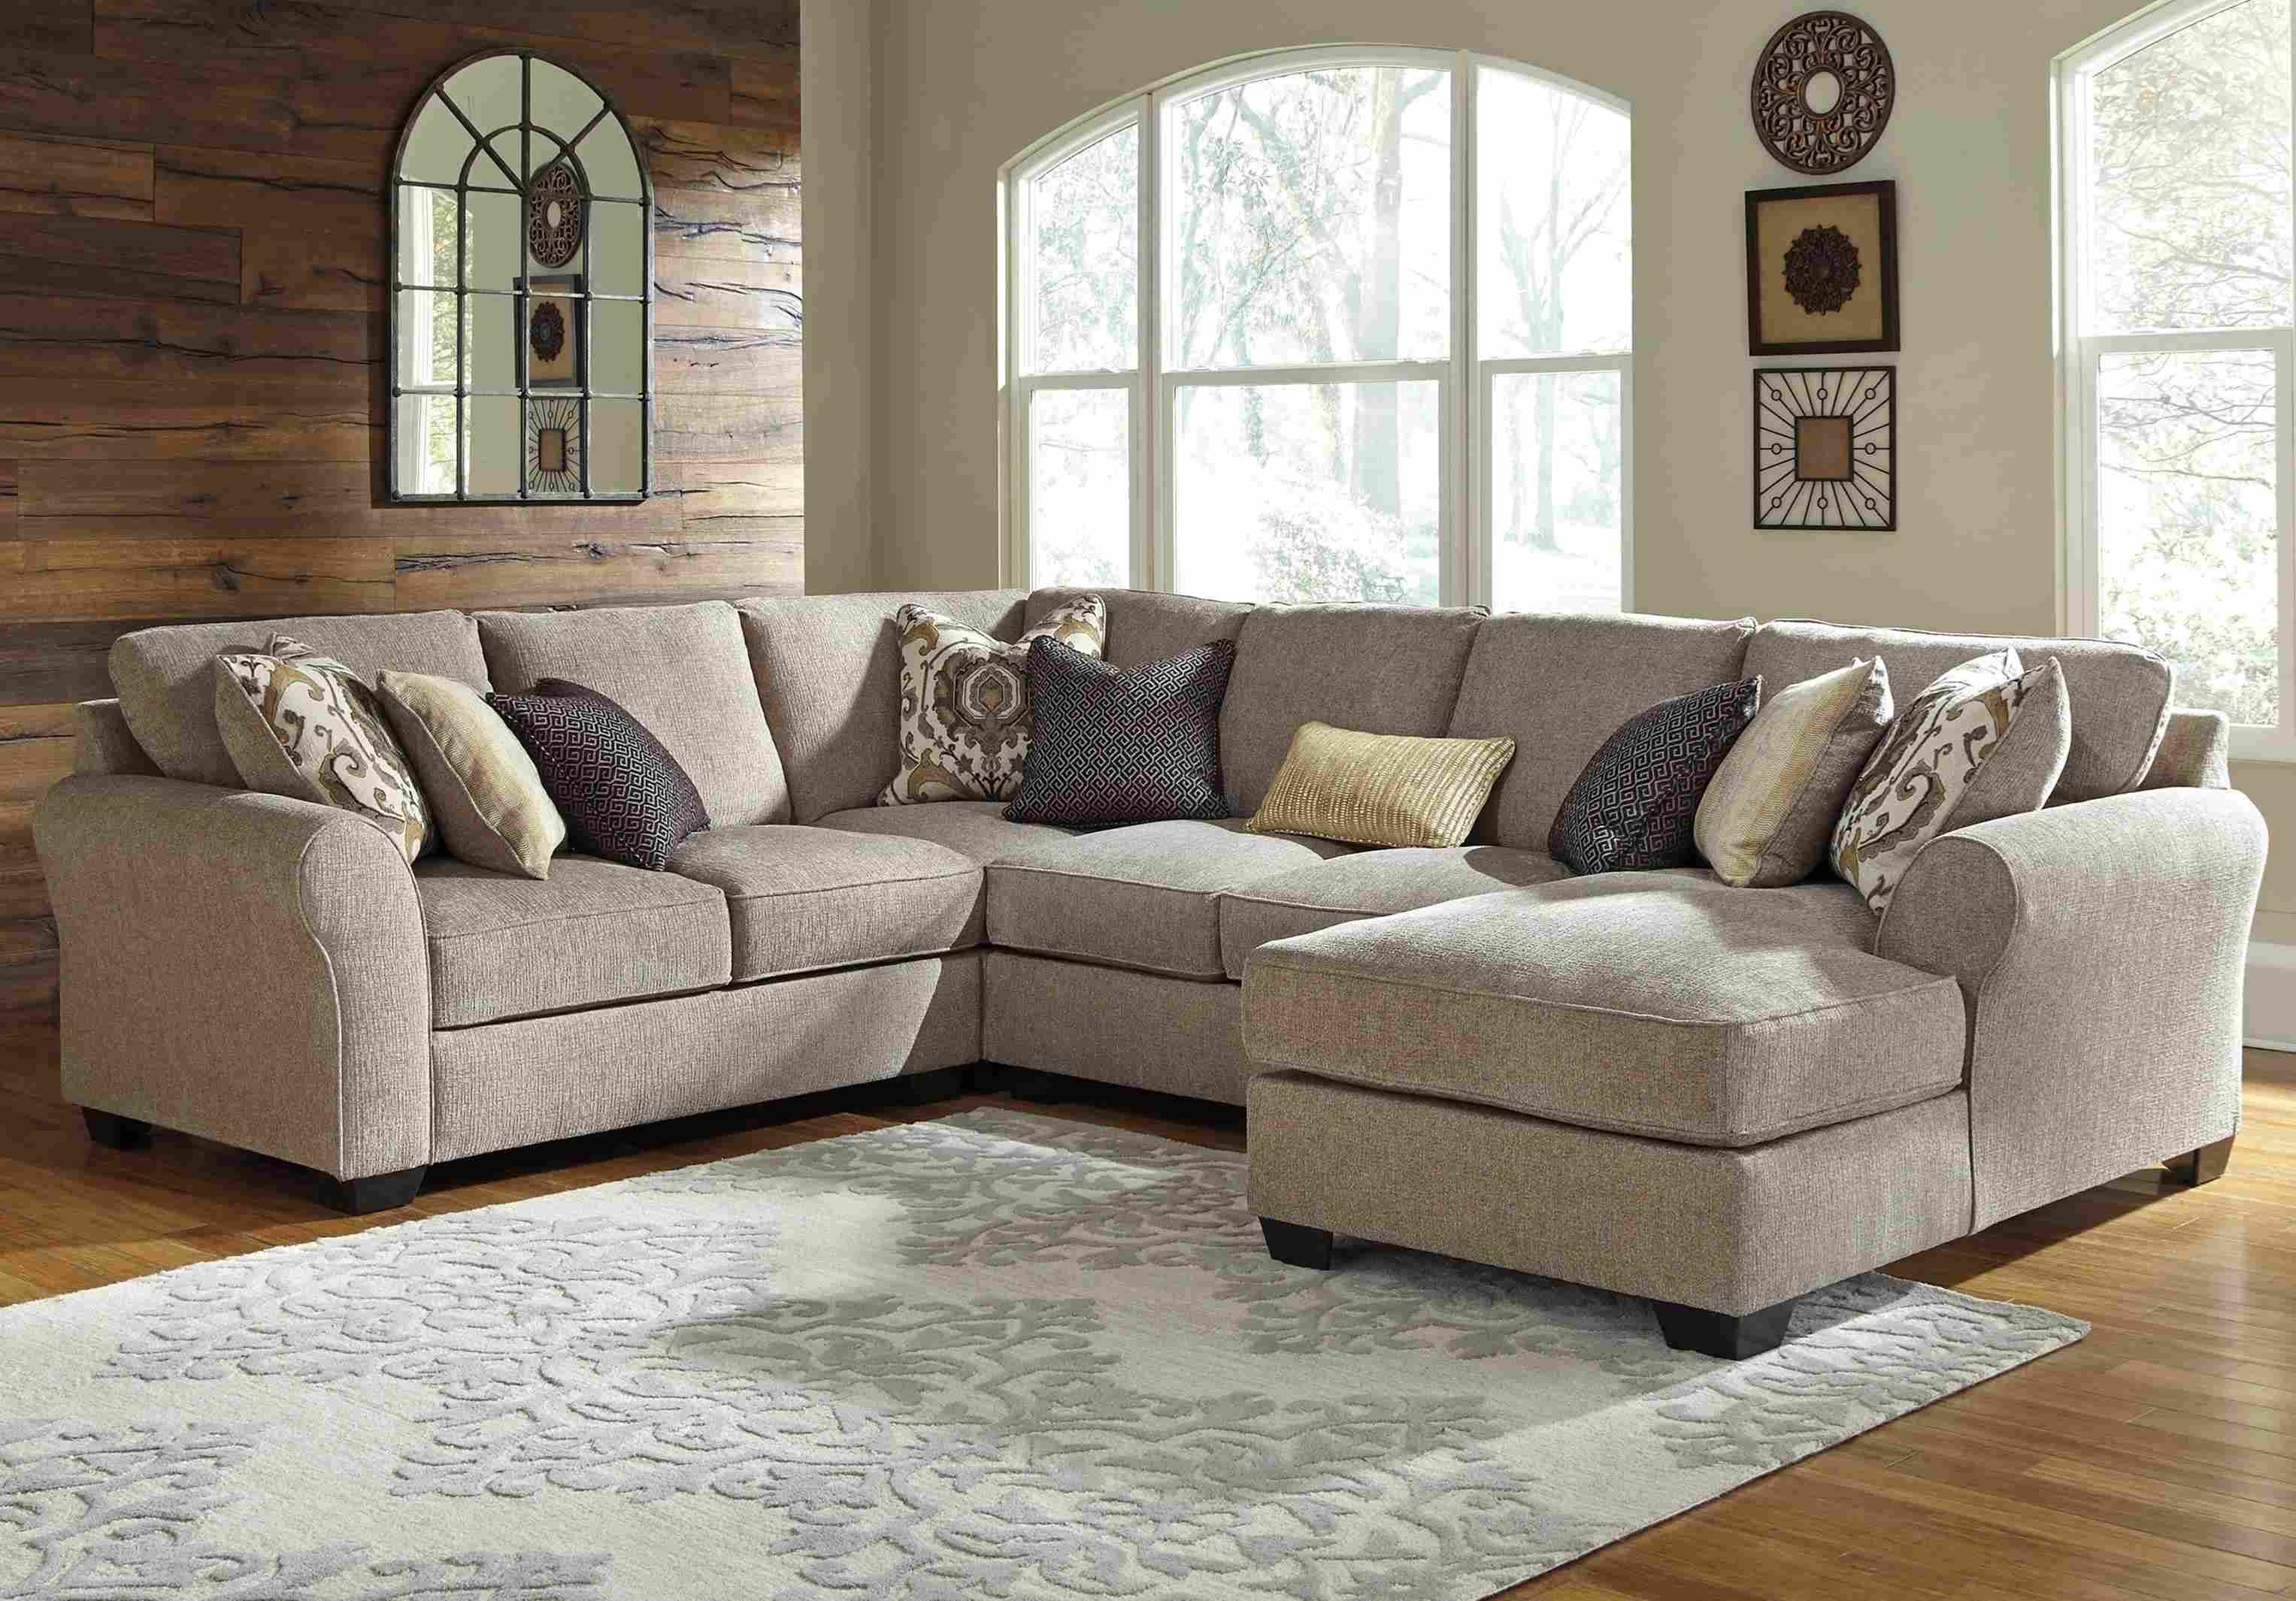 Microfiberctional Sofa With Chaise Amazing Photo Inspirations Pertaining To Arrowmask 2 Piece Sectionals With Laf Chaise (View 8 of 25)